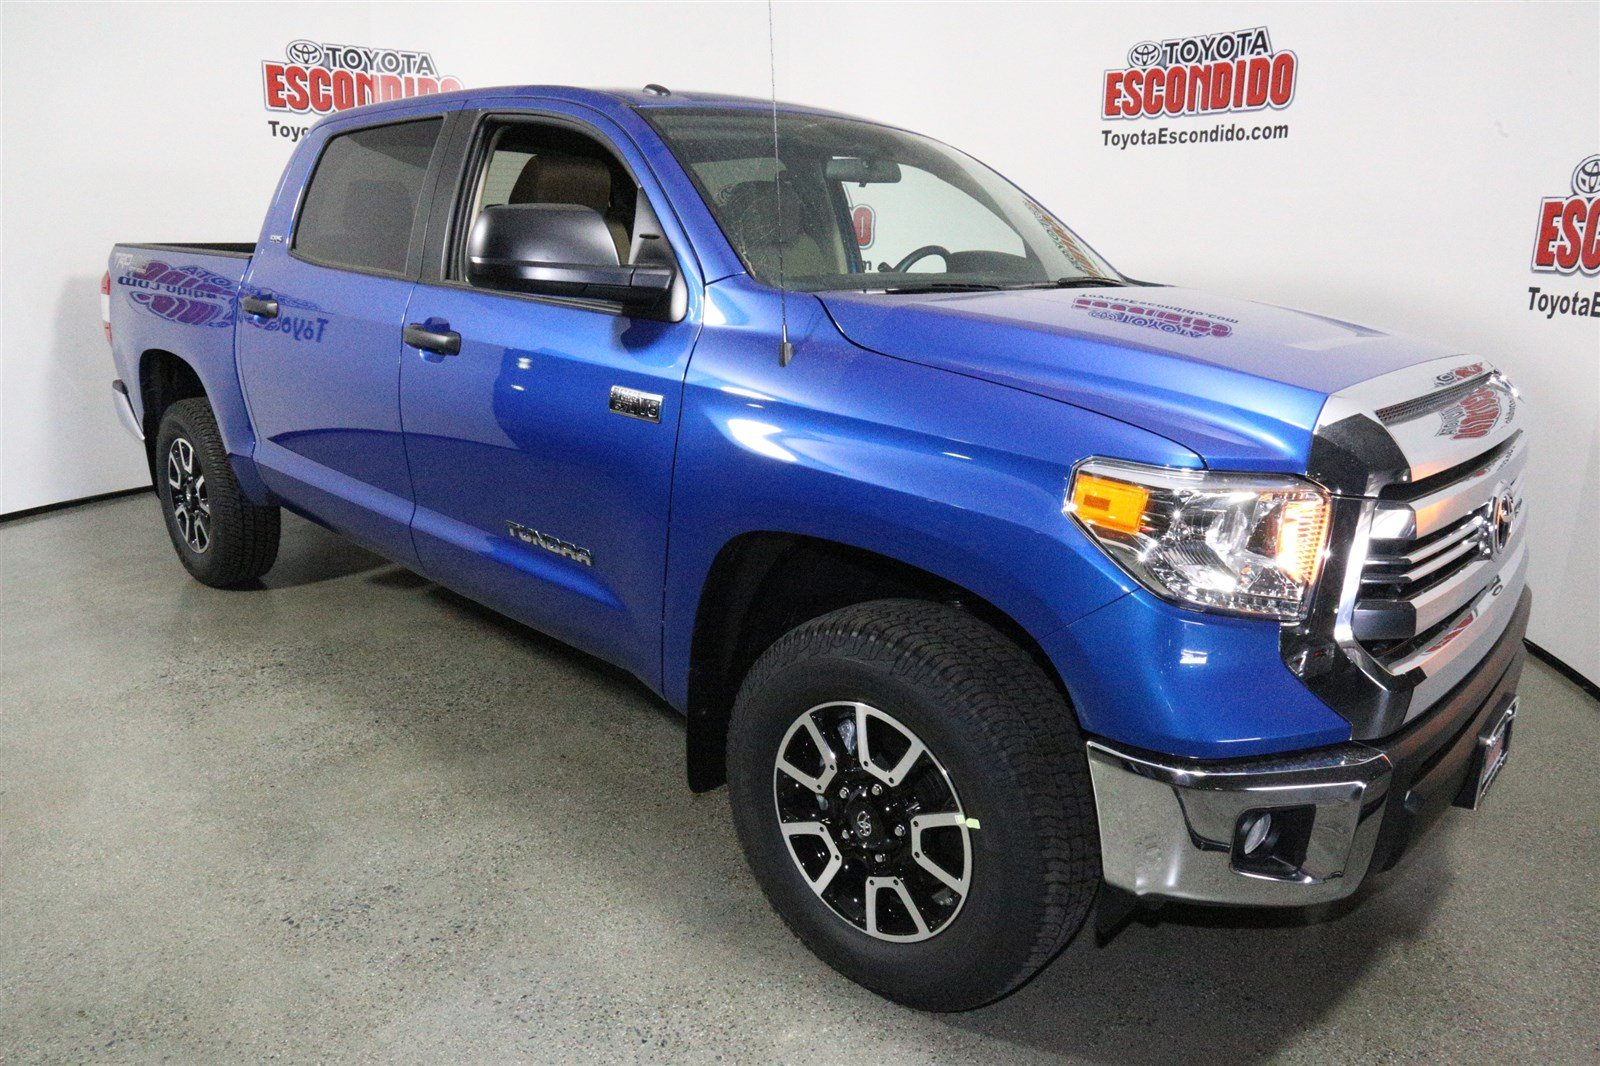 new 2017 toyota tundra sr5 4wd crew cab pickup in escondido hx644340 toyota escondido. Black Bedroom Furniture Sets. Home Design Ideas